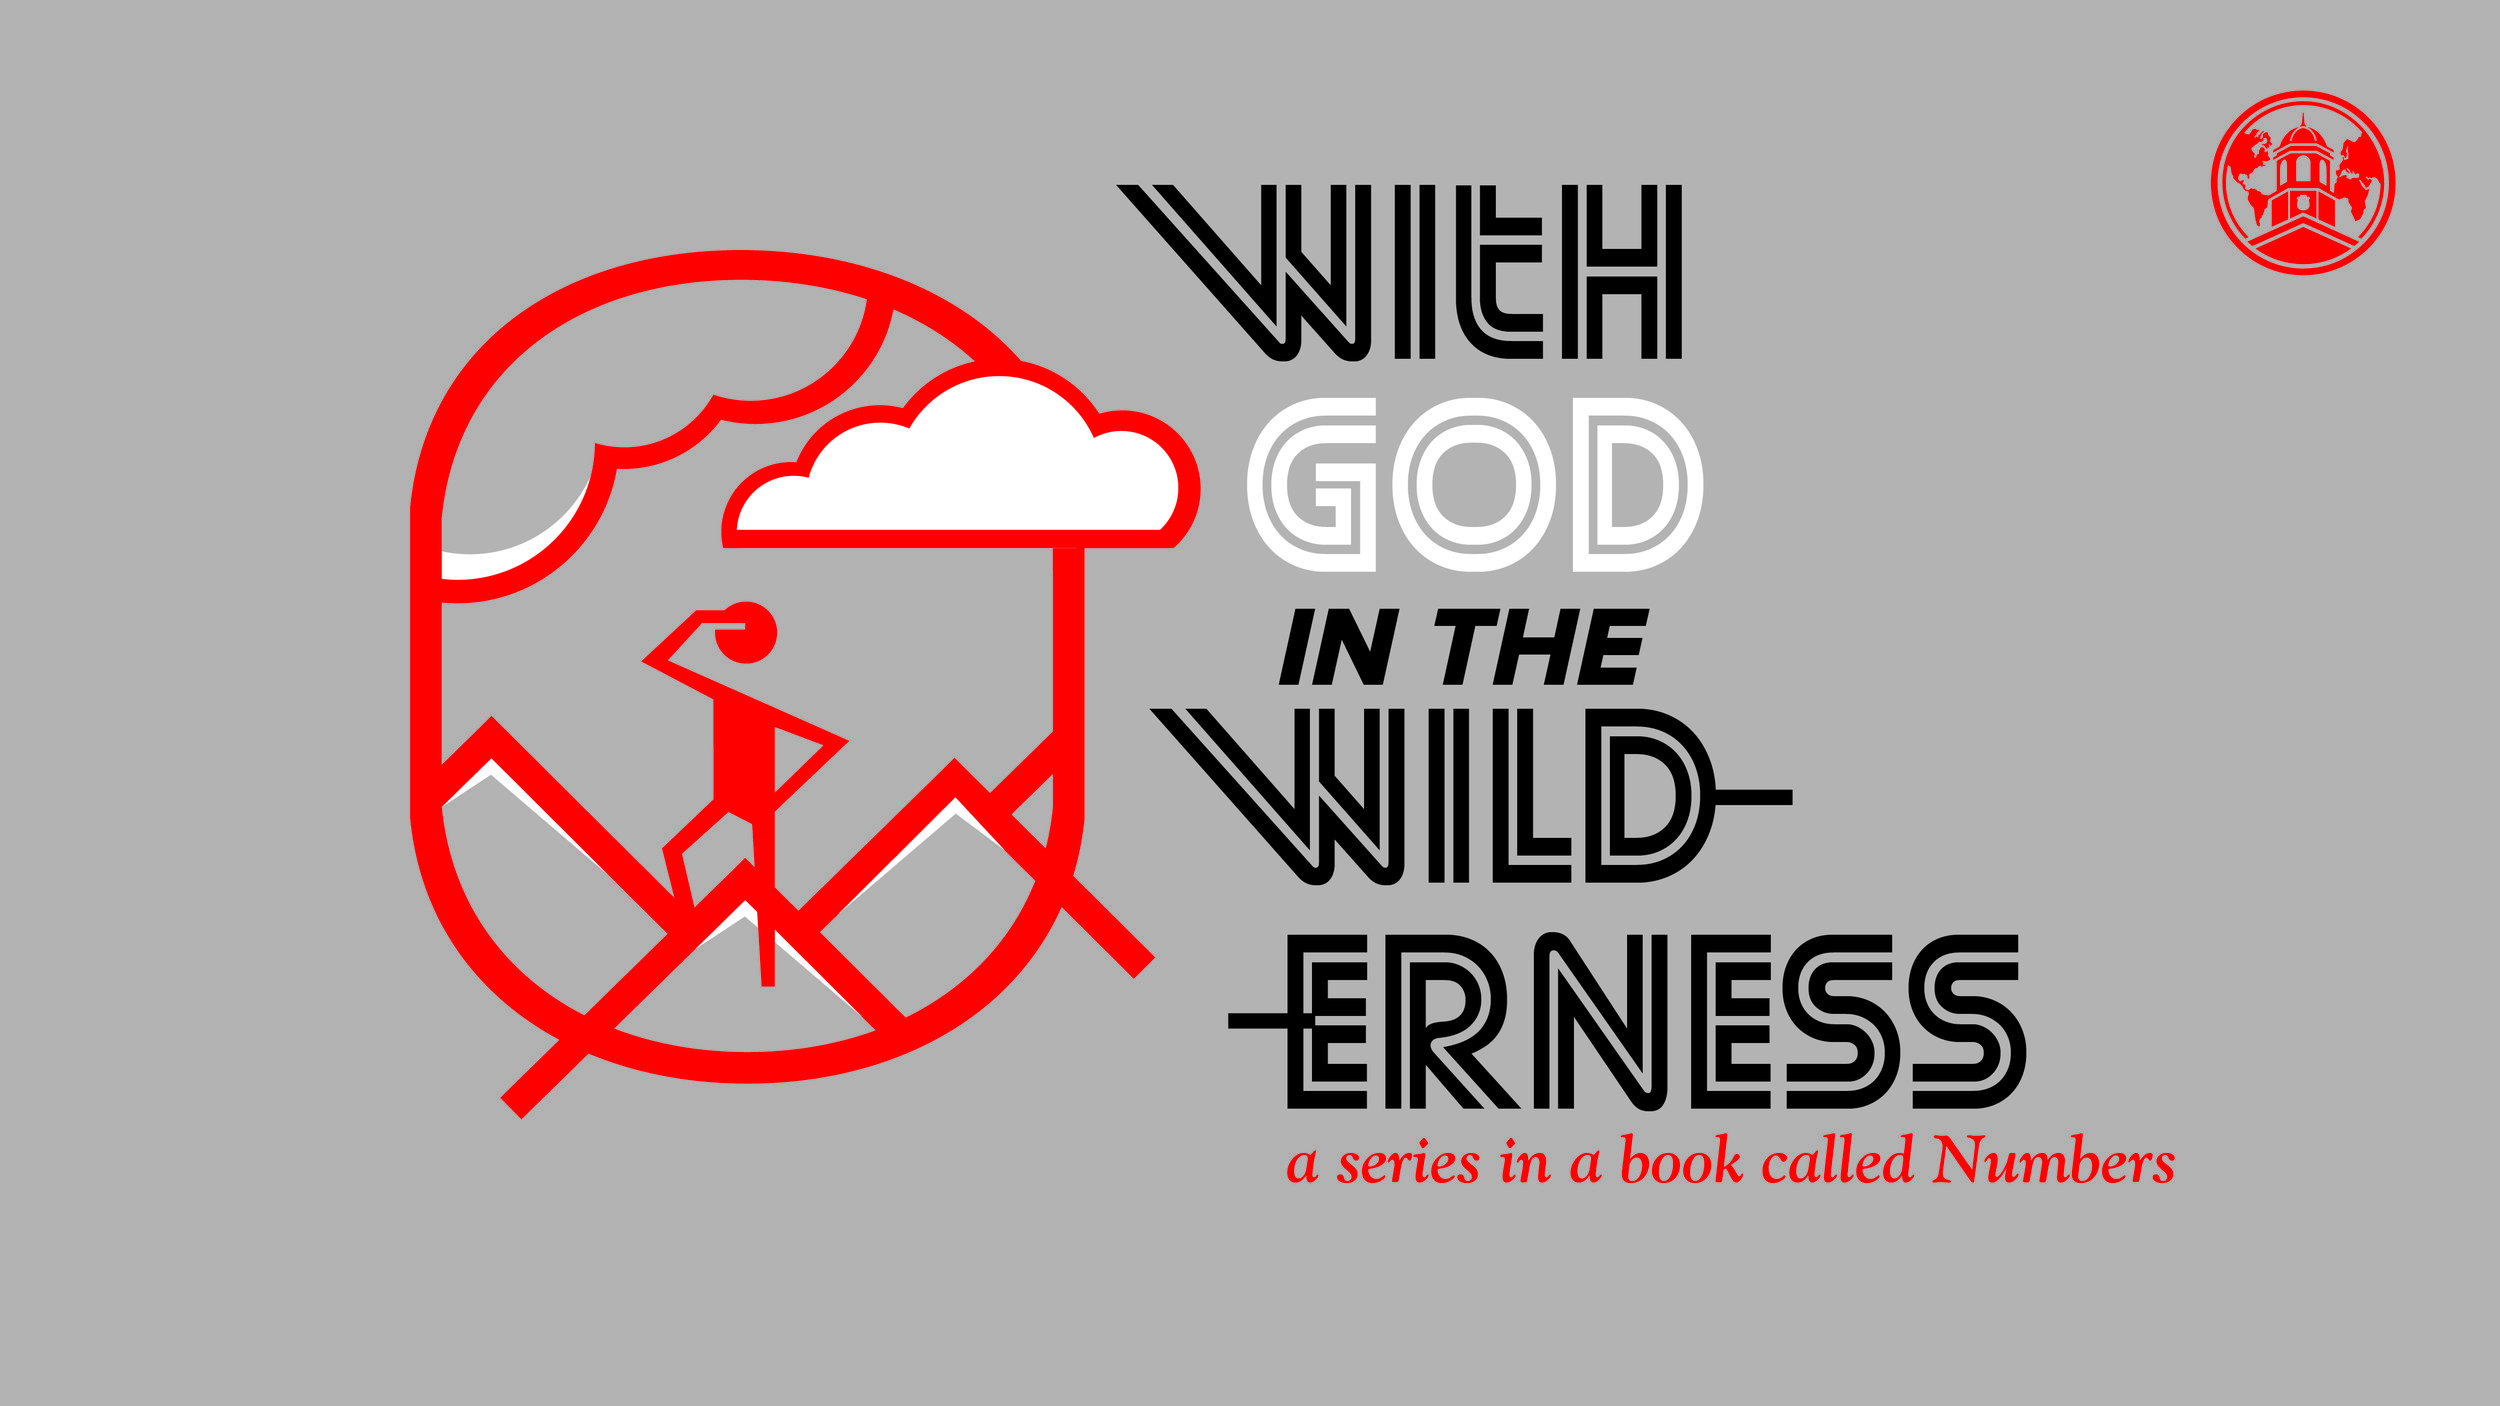 With God in the Wilderness - Spring 2018 series in a book called Numbers